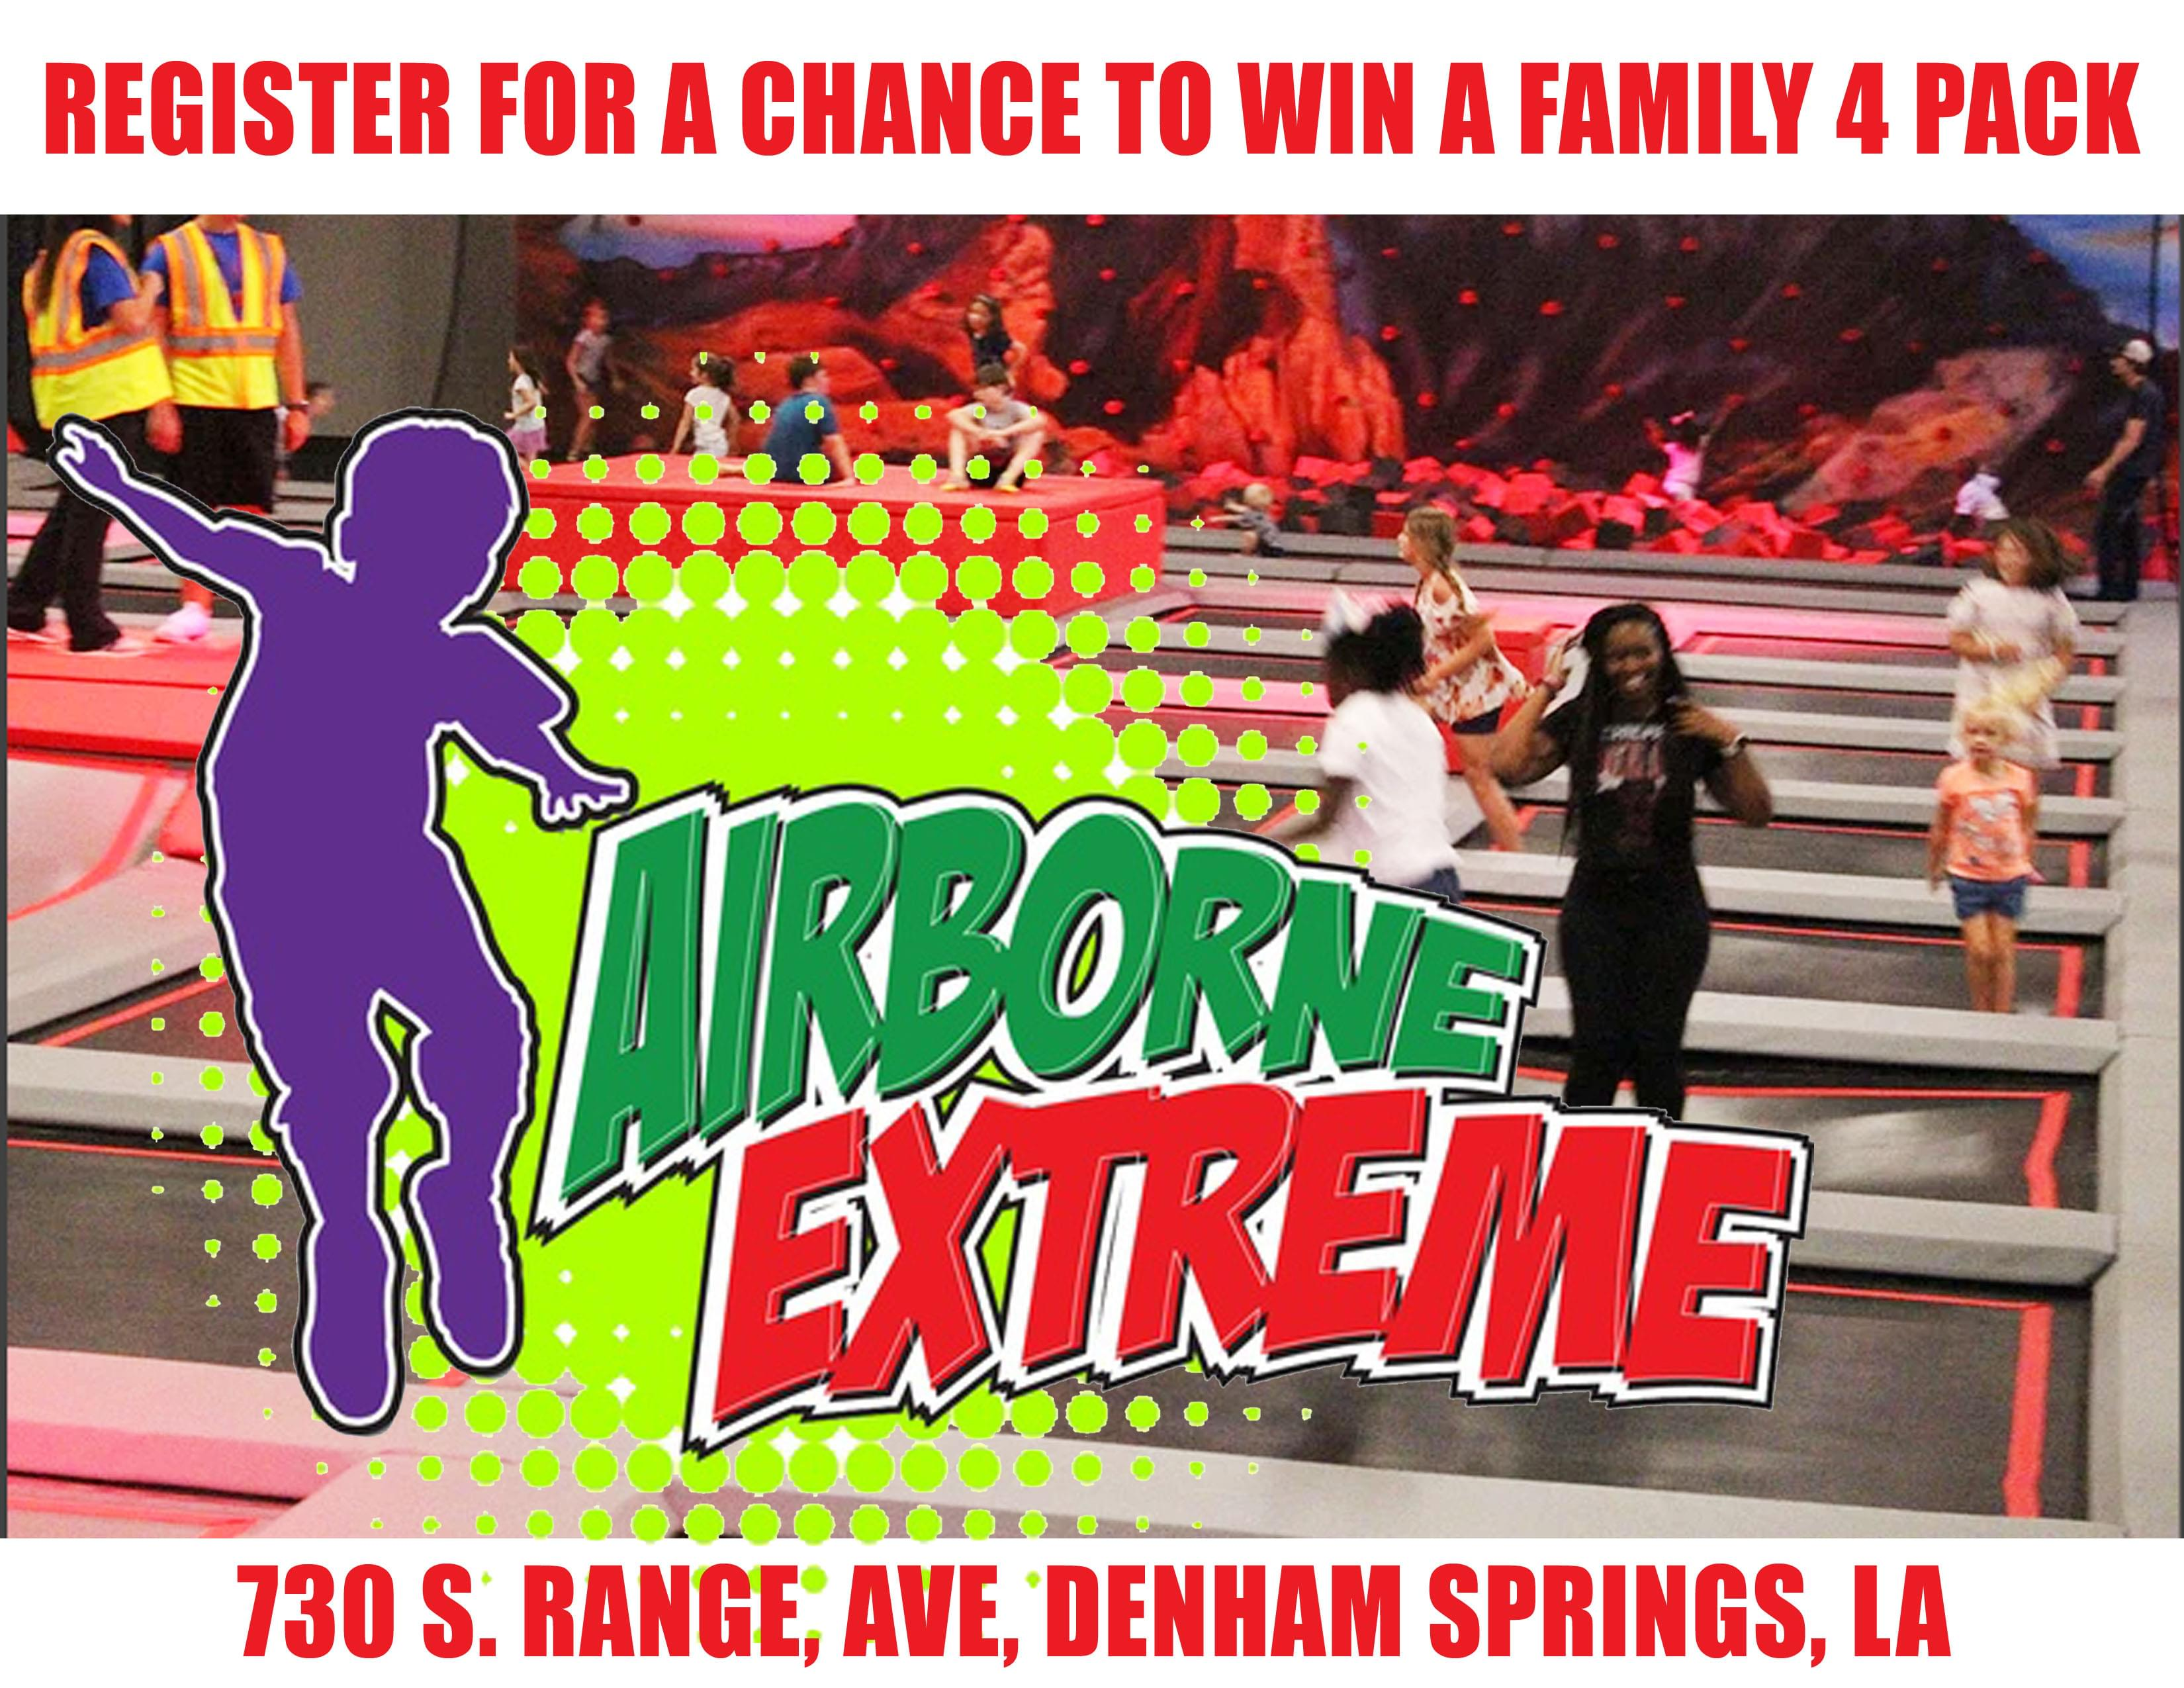 Win Airborne Extreme Trampoline Park Family 4-Pack